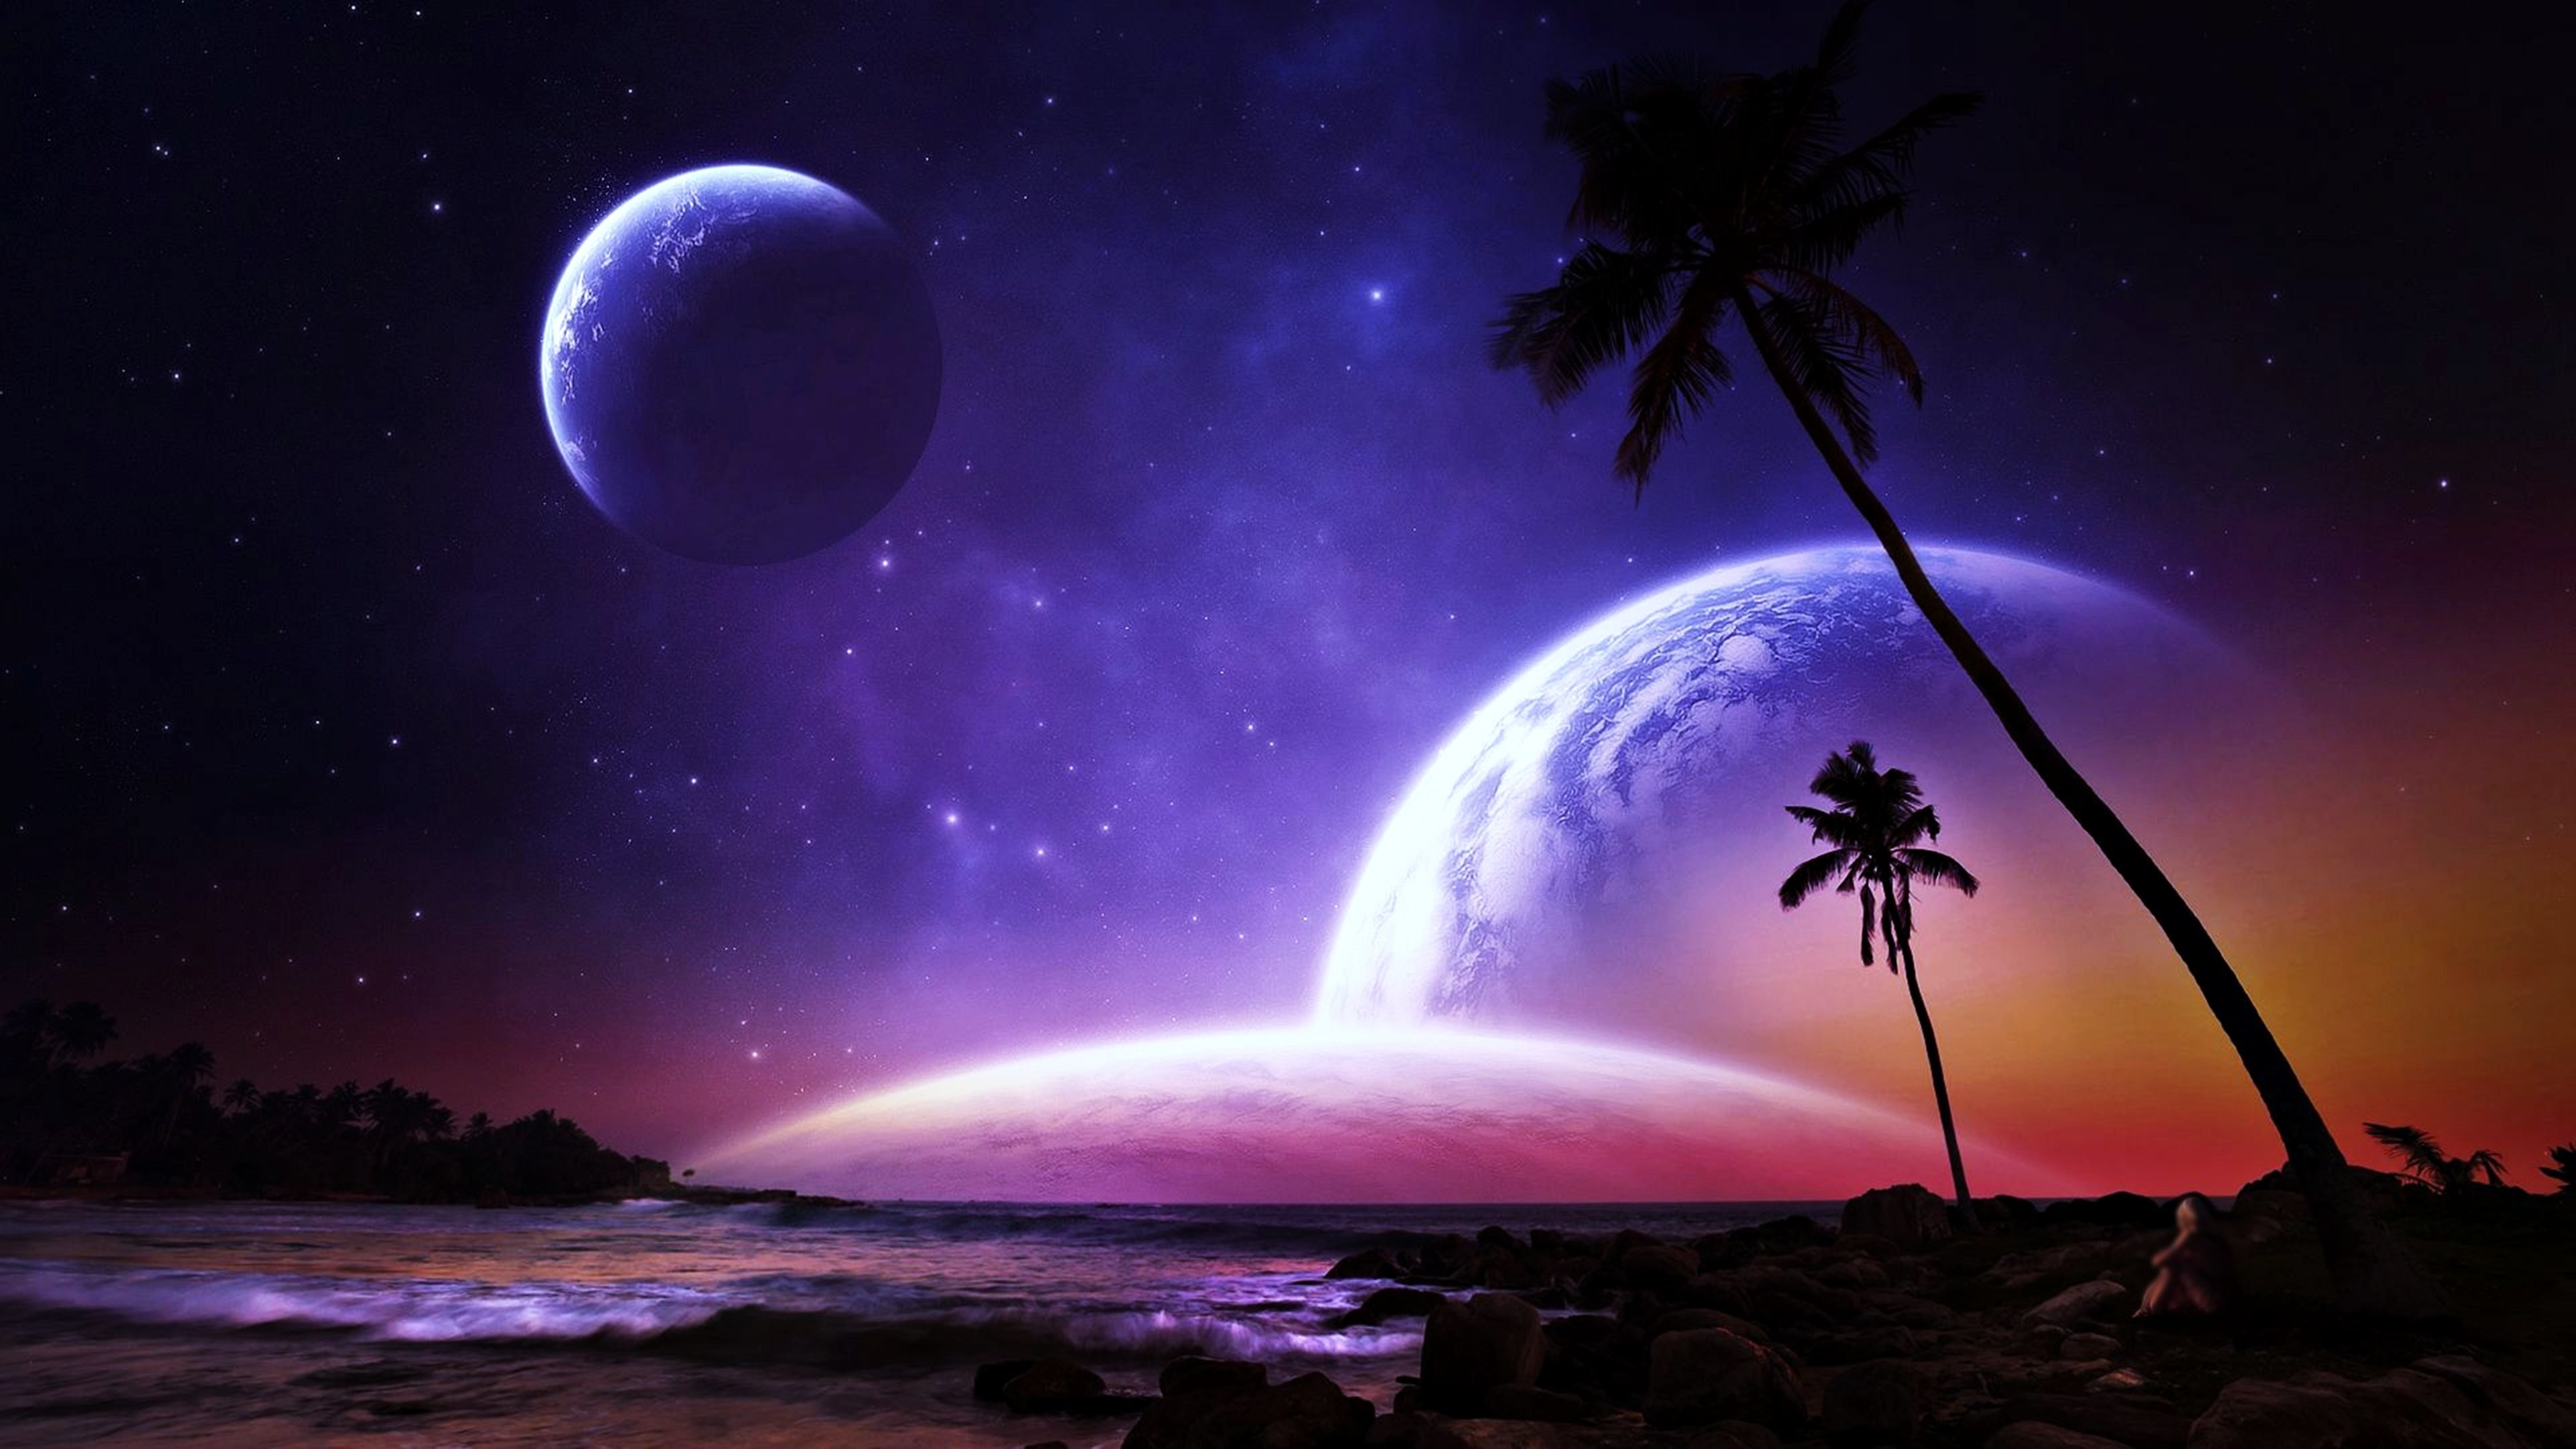 Planets palms fantasy dreams colorful beaches space stars galaxy worlds  earth wallpaper | | 646602 | WallpaperUP